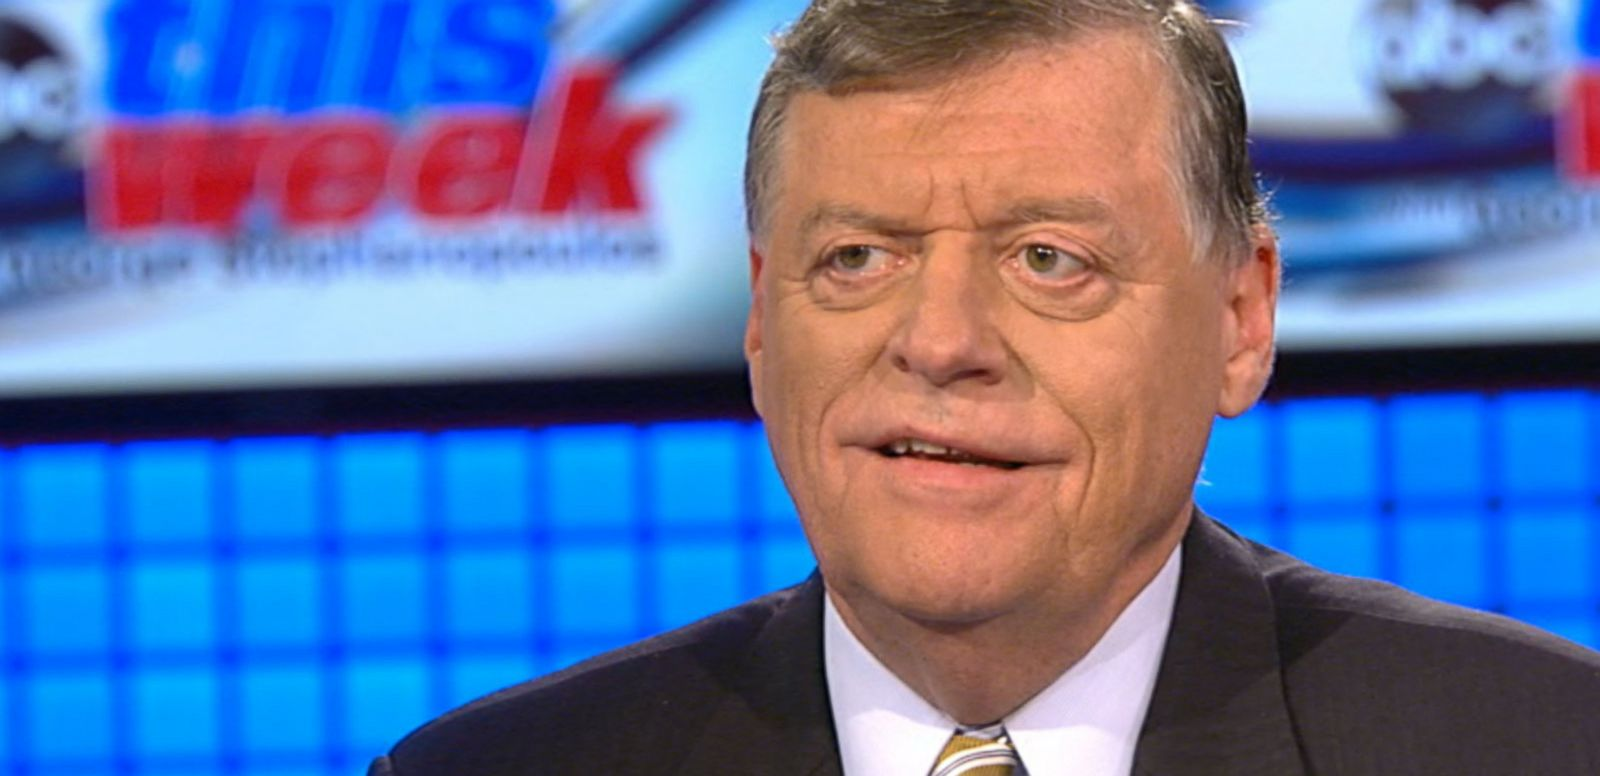 VIDEO: Rep. Tom Cole: McCarthy Benghazi Comments Not His Most Artful Moment